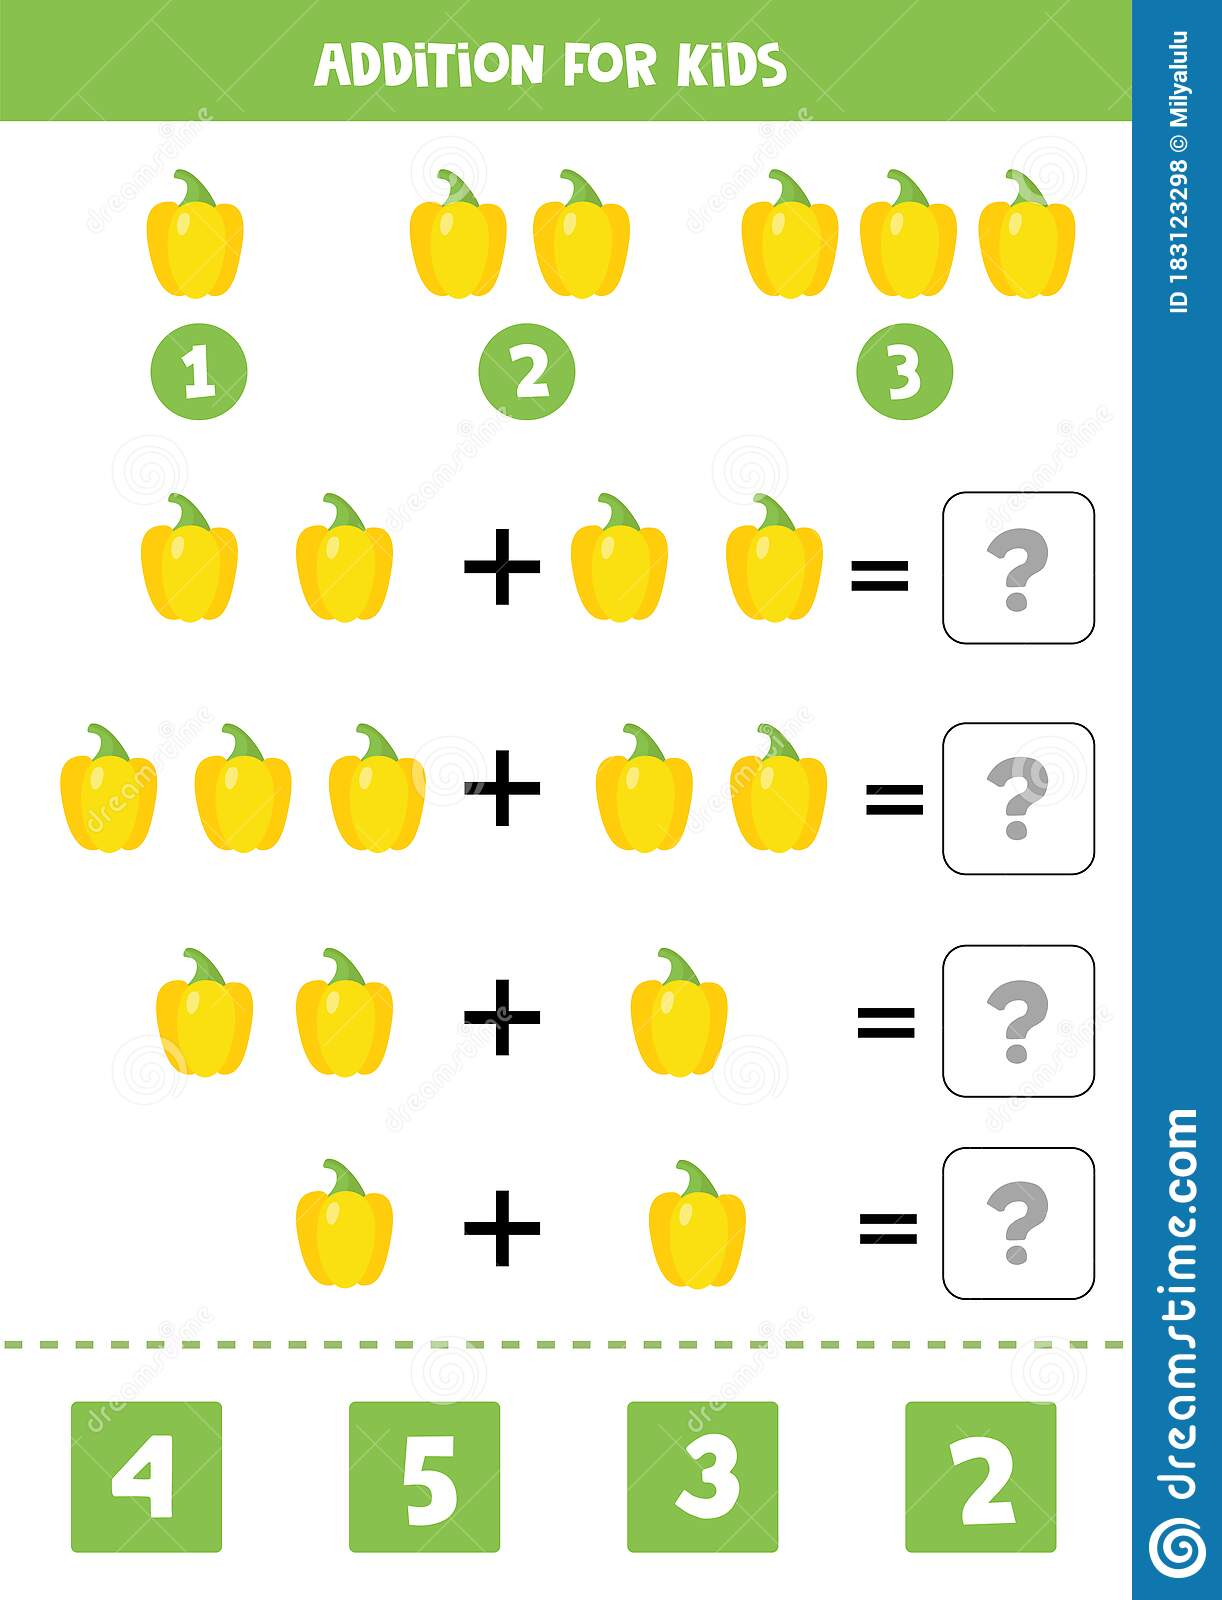 Addition With Cartoon Bulgarian Pepper Math Game For Kids